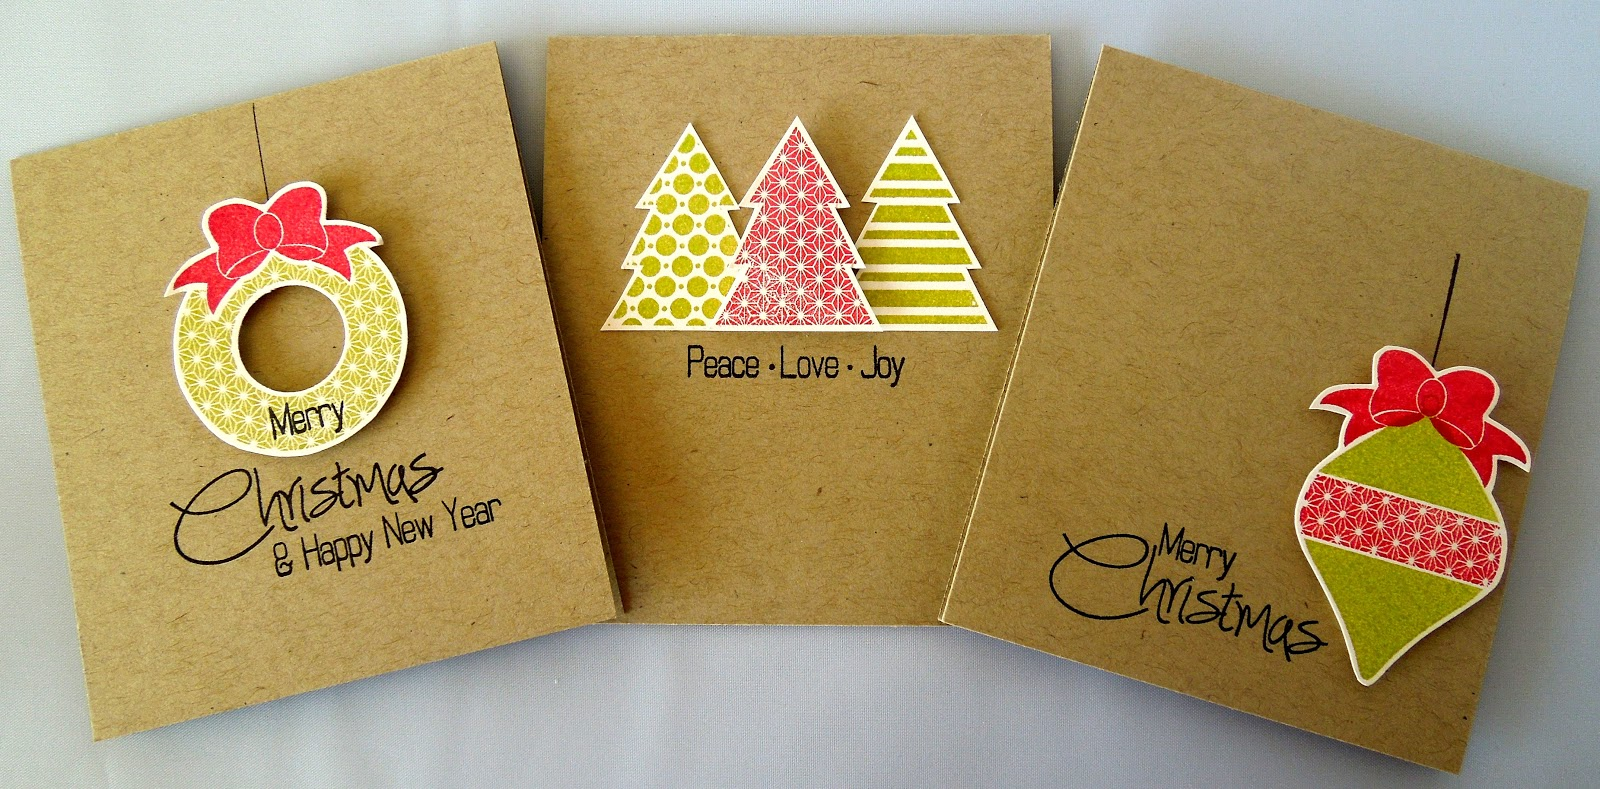 Stamping & Sharing: Quick & Simple Christmas Cards